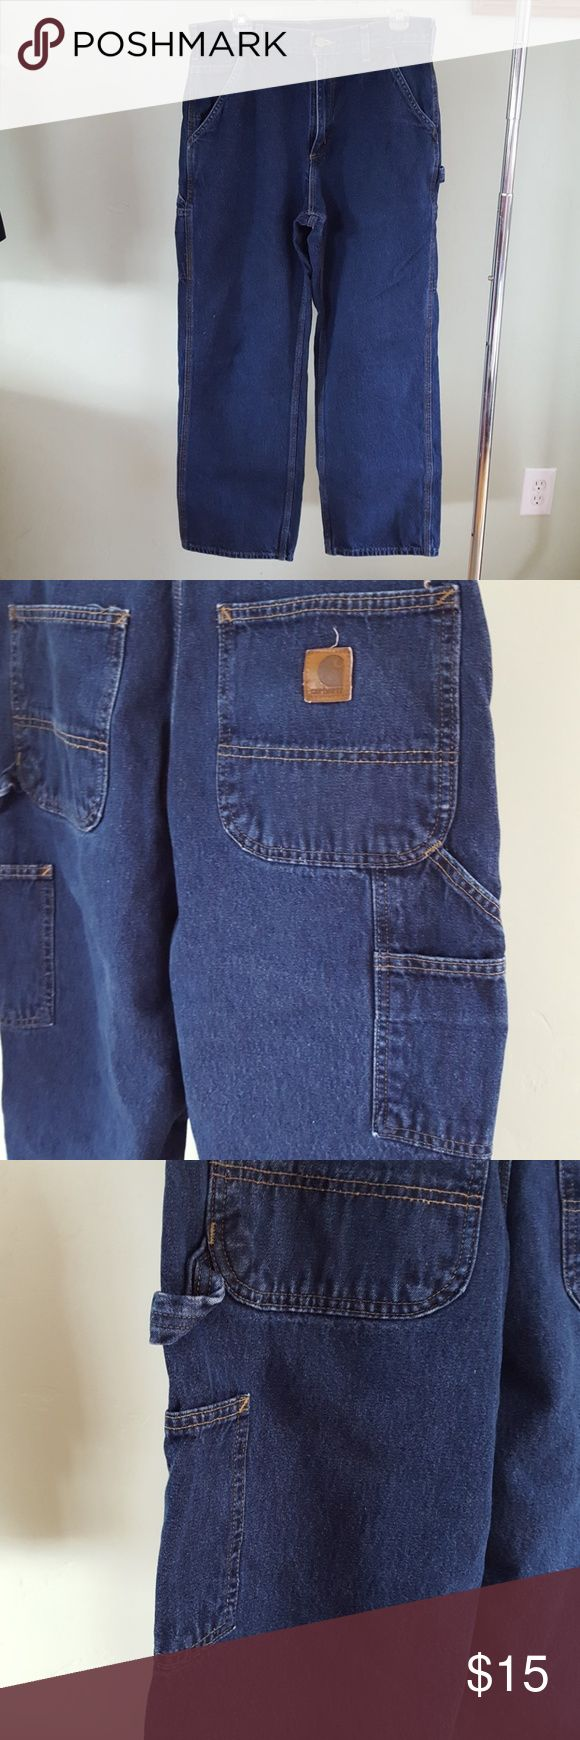 MENS CARPENTER CARHARTT JEANS EUC! These carhartt jeans are carpenter style. Loose fit jeans. Size 32x30. No signs of wear/fraying on the leg hem! Very small flaw NOT NOTICEABLE on front of pant leg. Please see all photos of this GREAT pair of jeans. No stains or odors. Smoke free pet free home. *This item also available on Merc. Carhartt Jeans